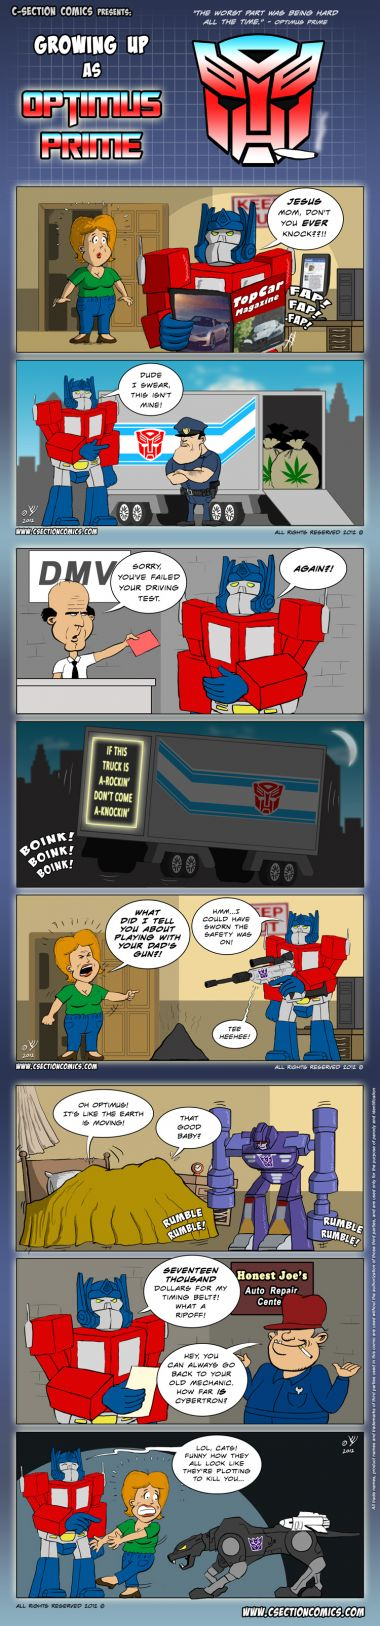 Growing Up Optimus Prime